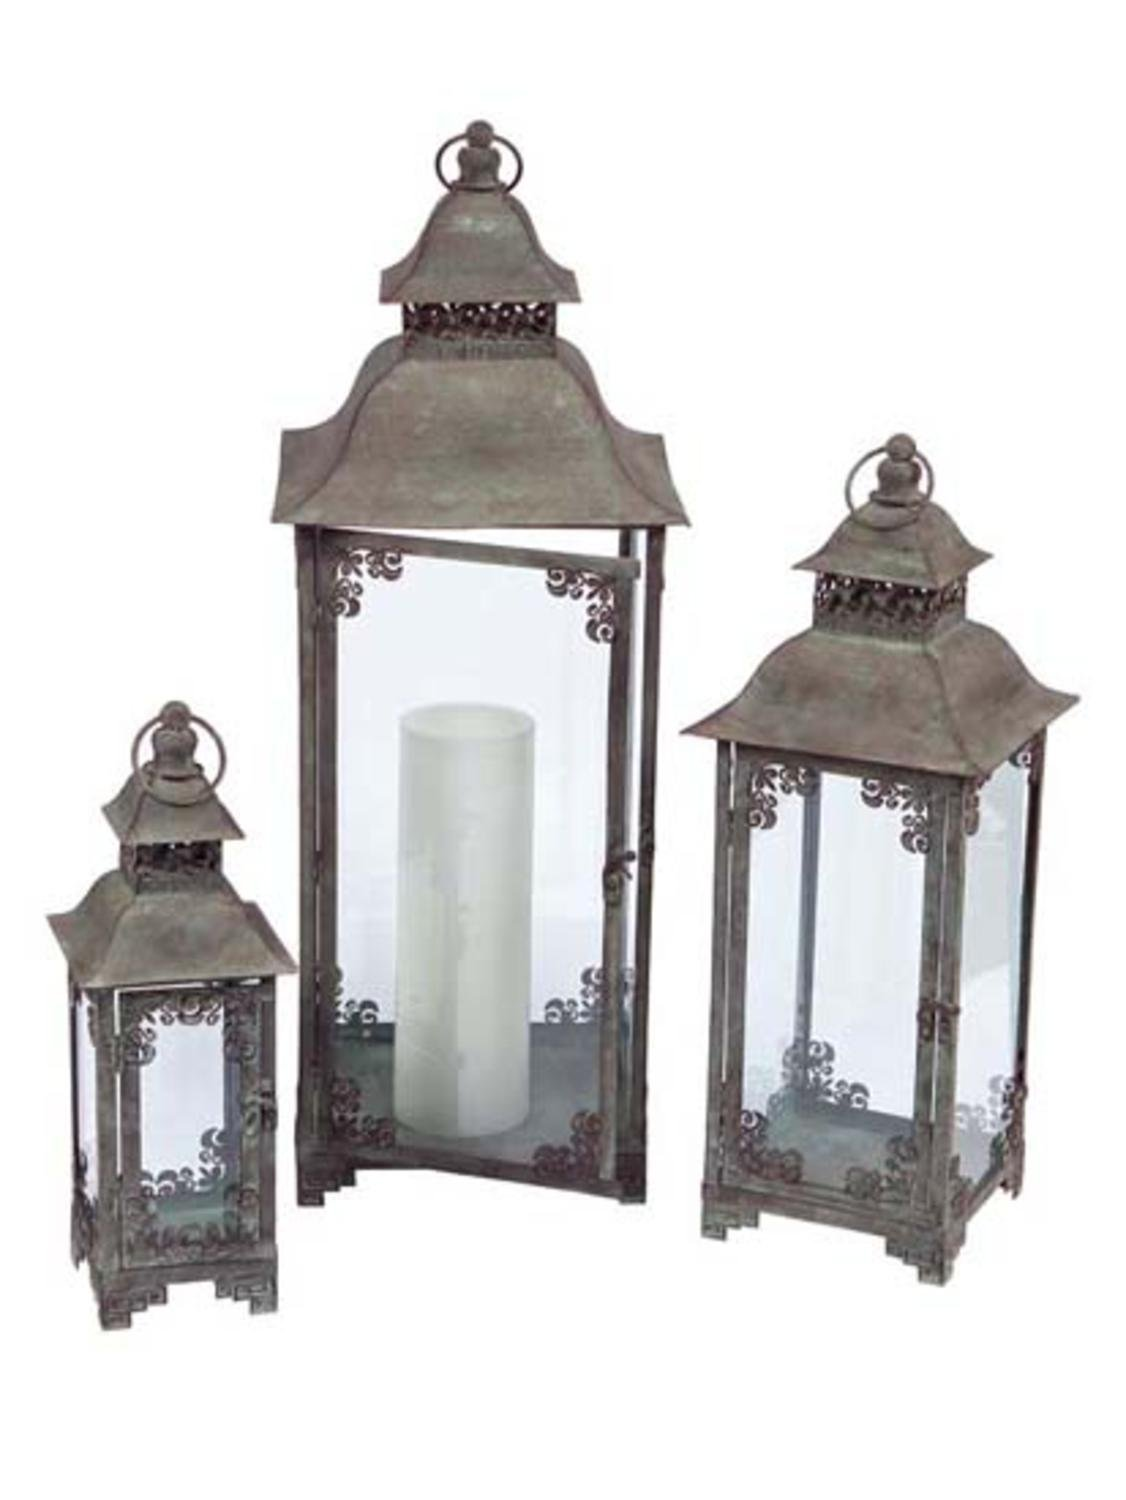 Melrose International Secret Enchanted Garden Metal and Glass Lantern, Set of 3 by Melrose International